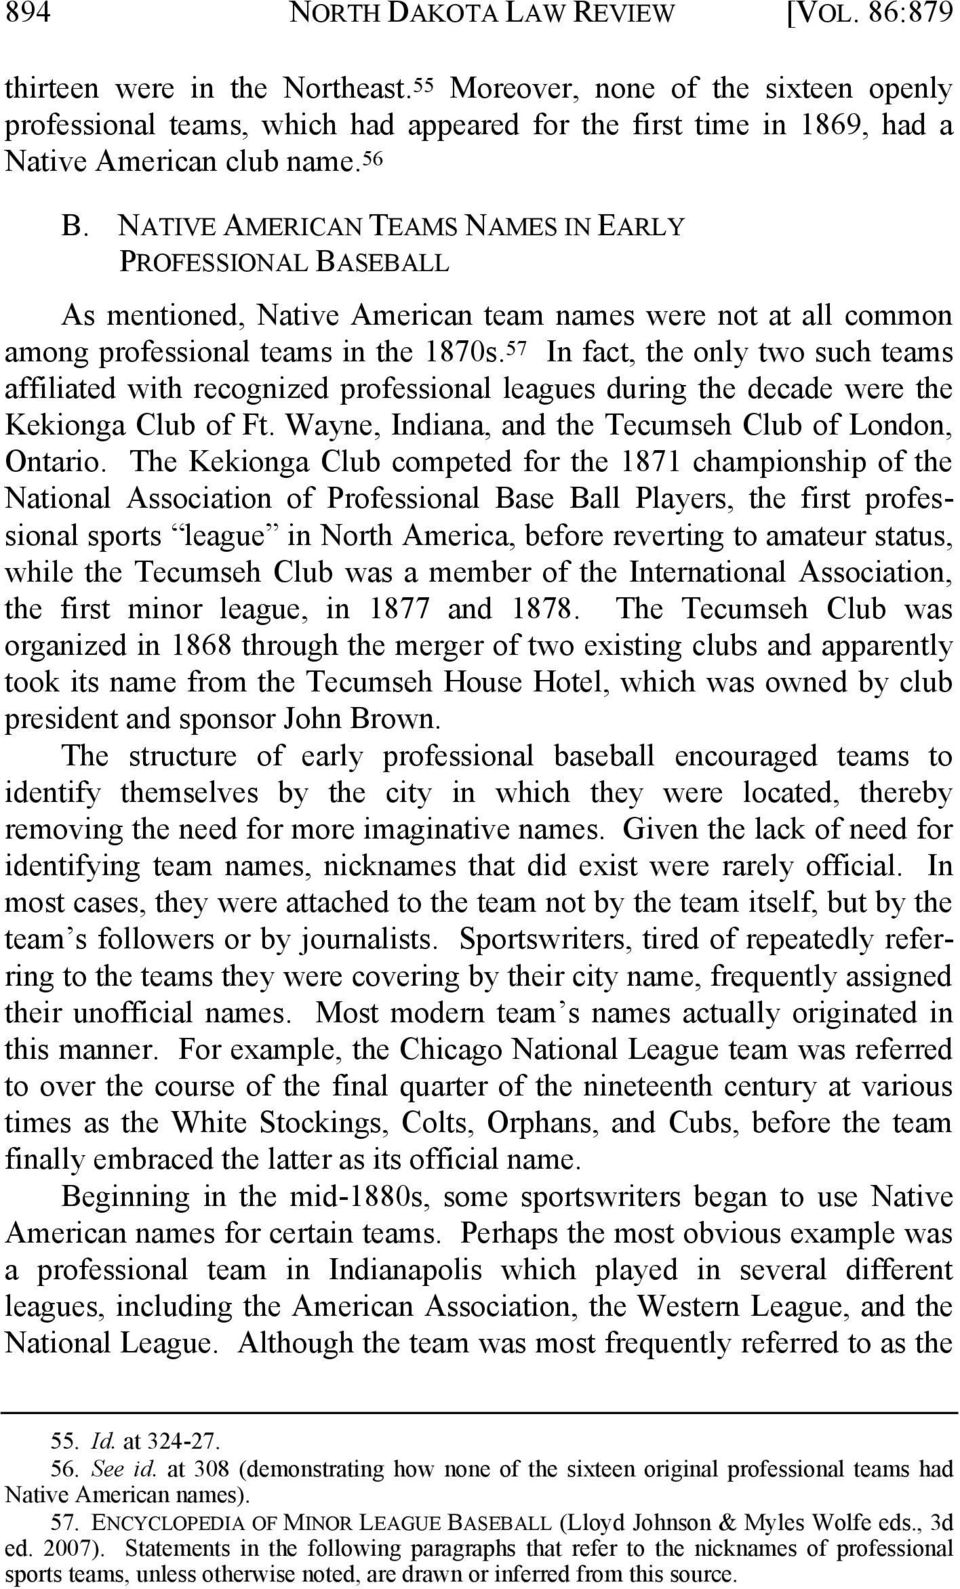 NATIVE AMERICAN TEAMS NAMES IN EARLY PROFESSIONAL BASEBALL As mentioned, Native American team names were not at all common among professional teams in the 1870s.